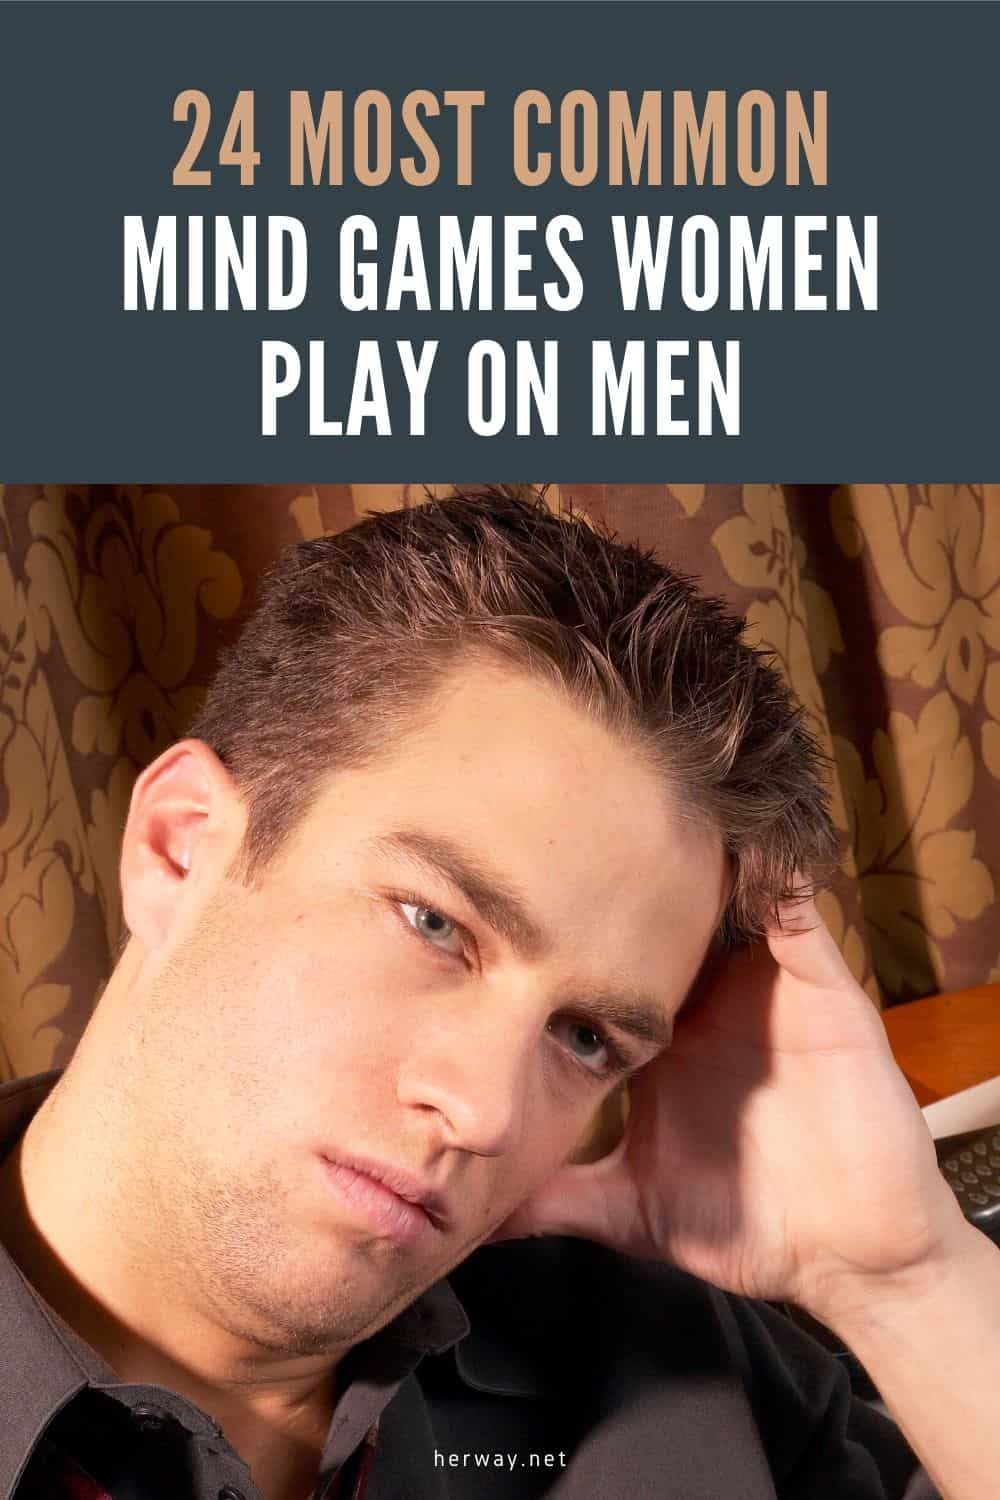 24 Most Common Mind Games Women Play On Men